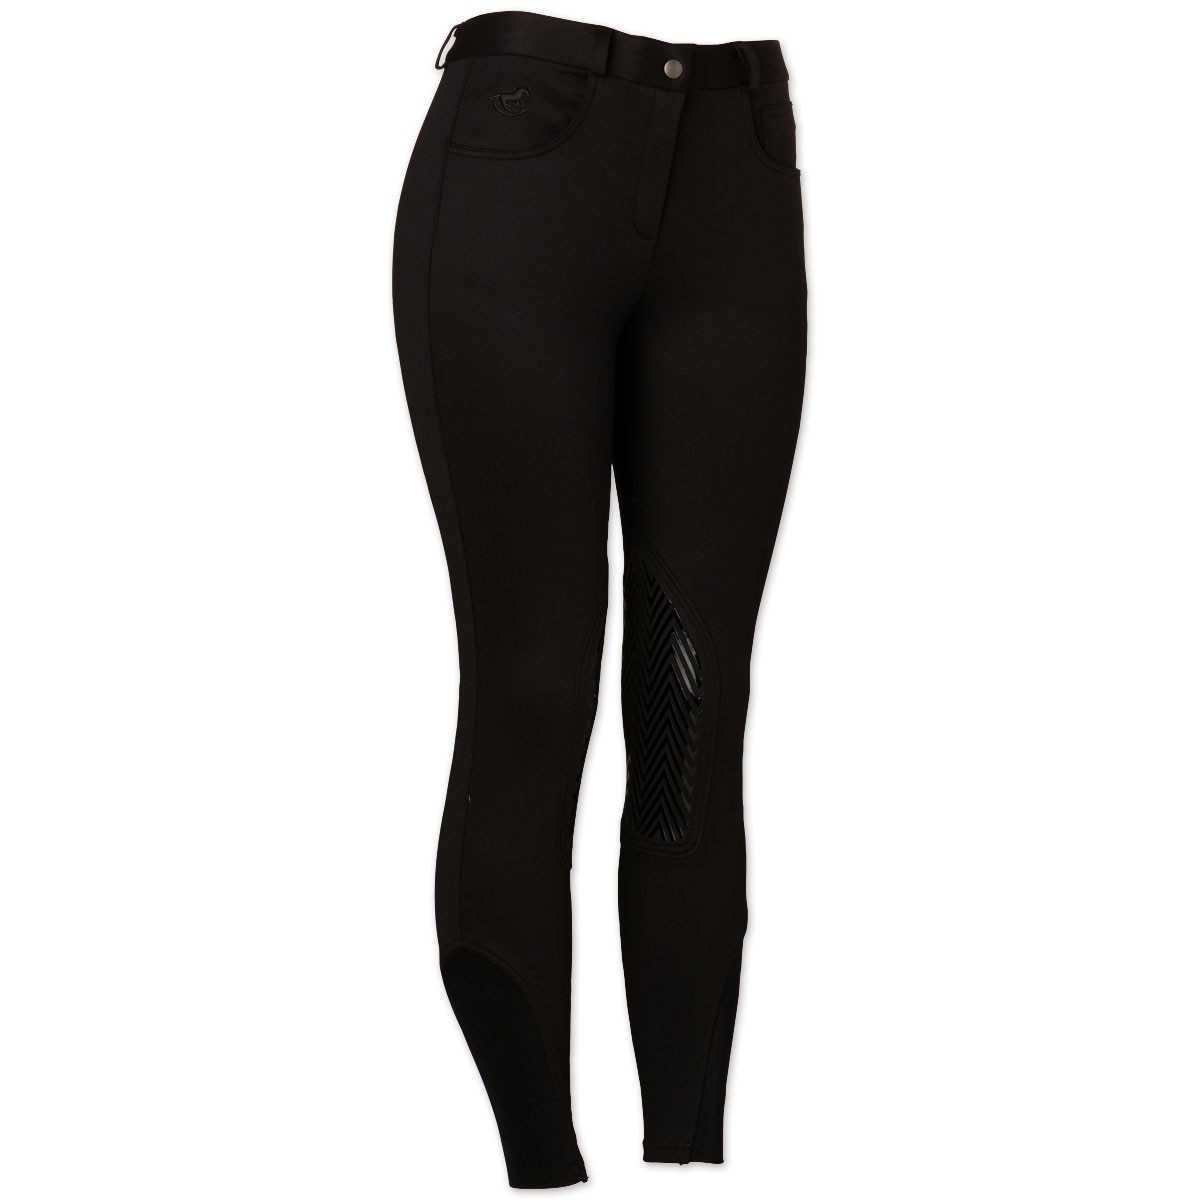 Piper Knit Breeches by SmartPak- Fleece Lined Knee Patch